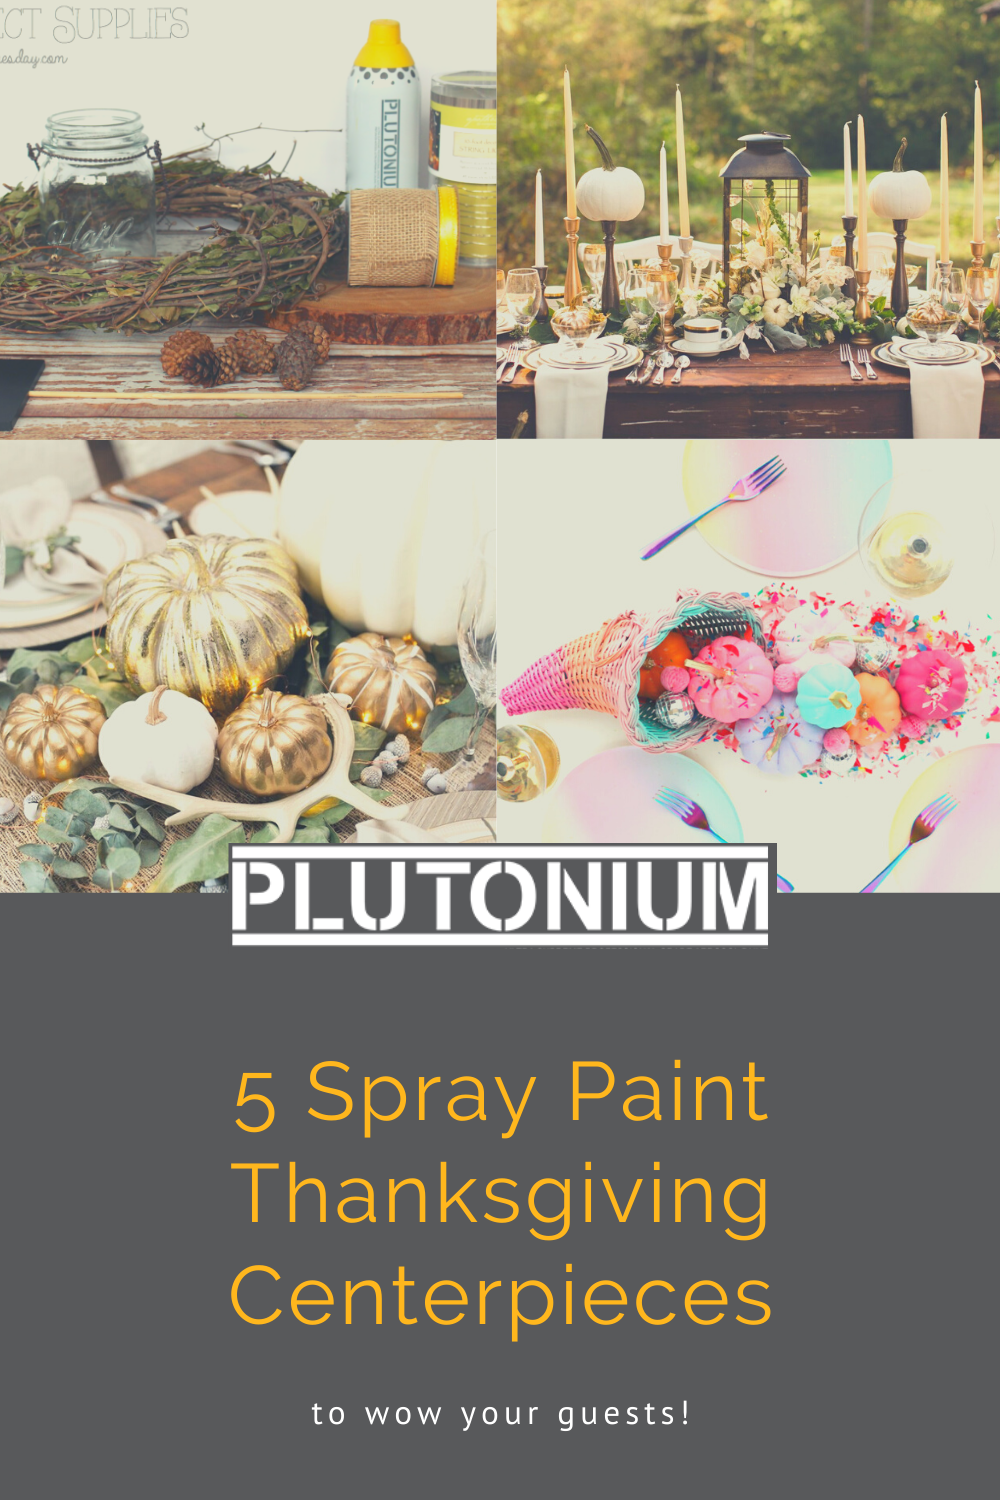 5 Spray Paint Thanksgiving Centerpieces to Wow Your Guests